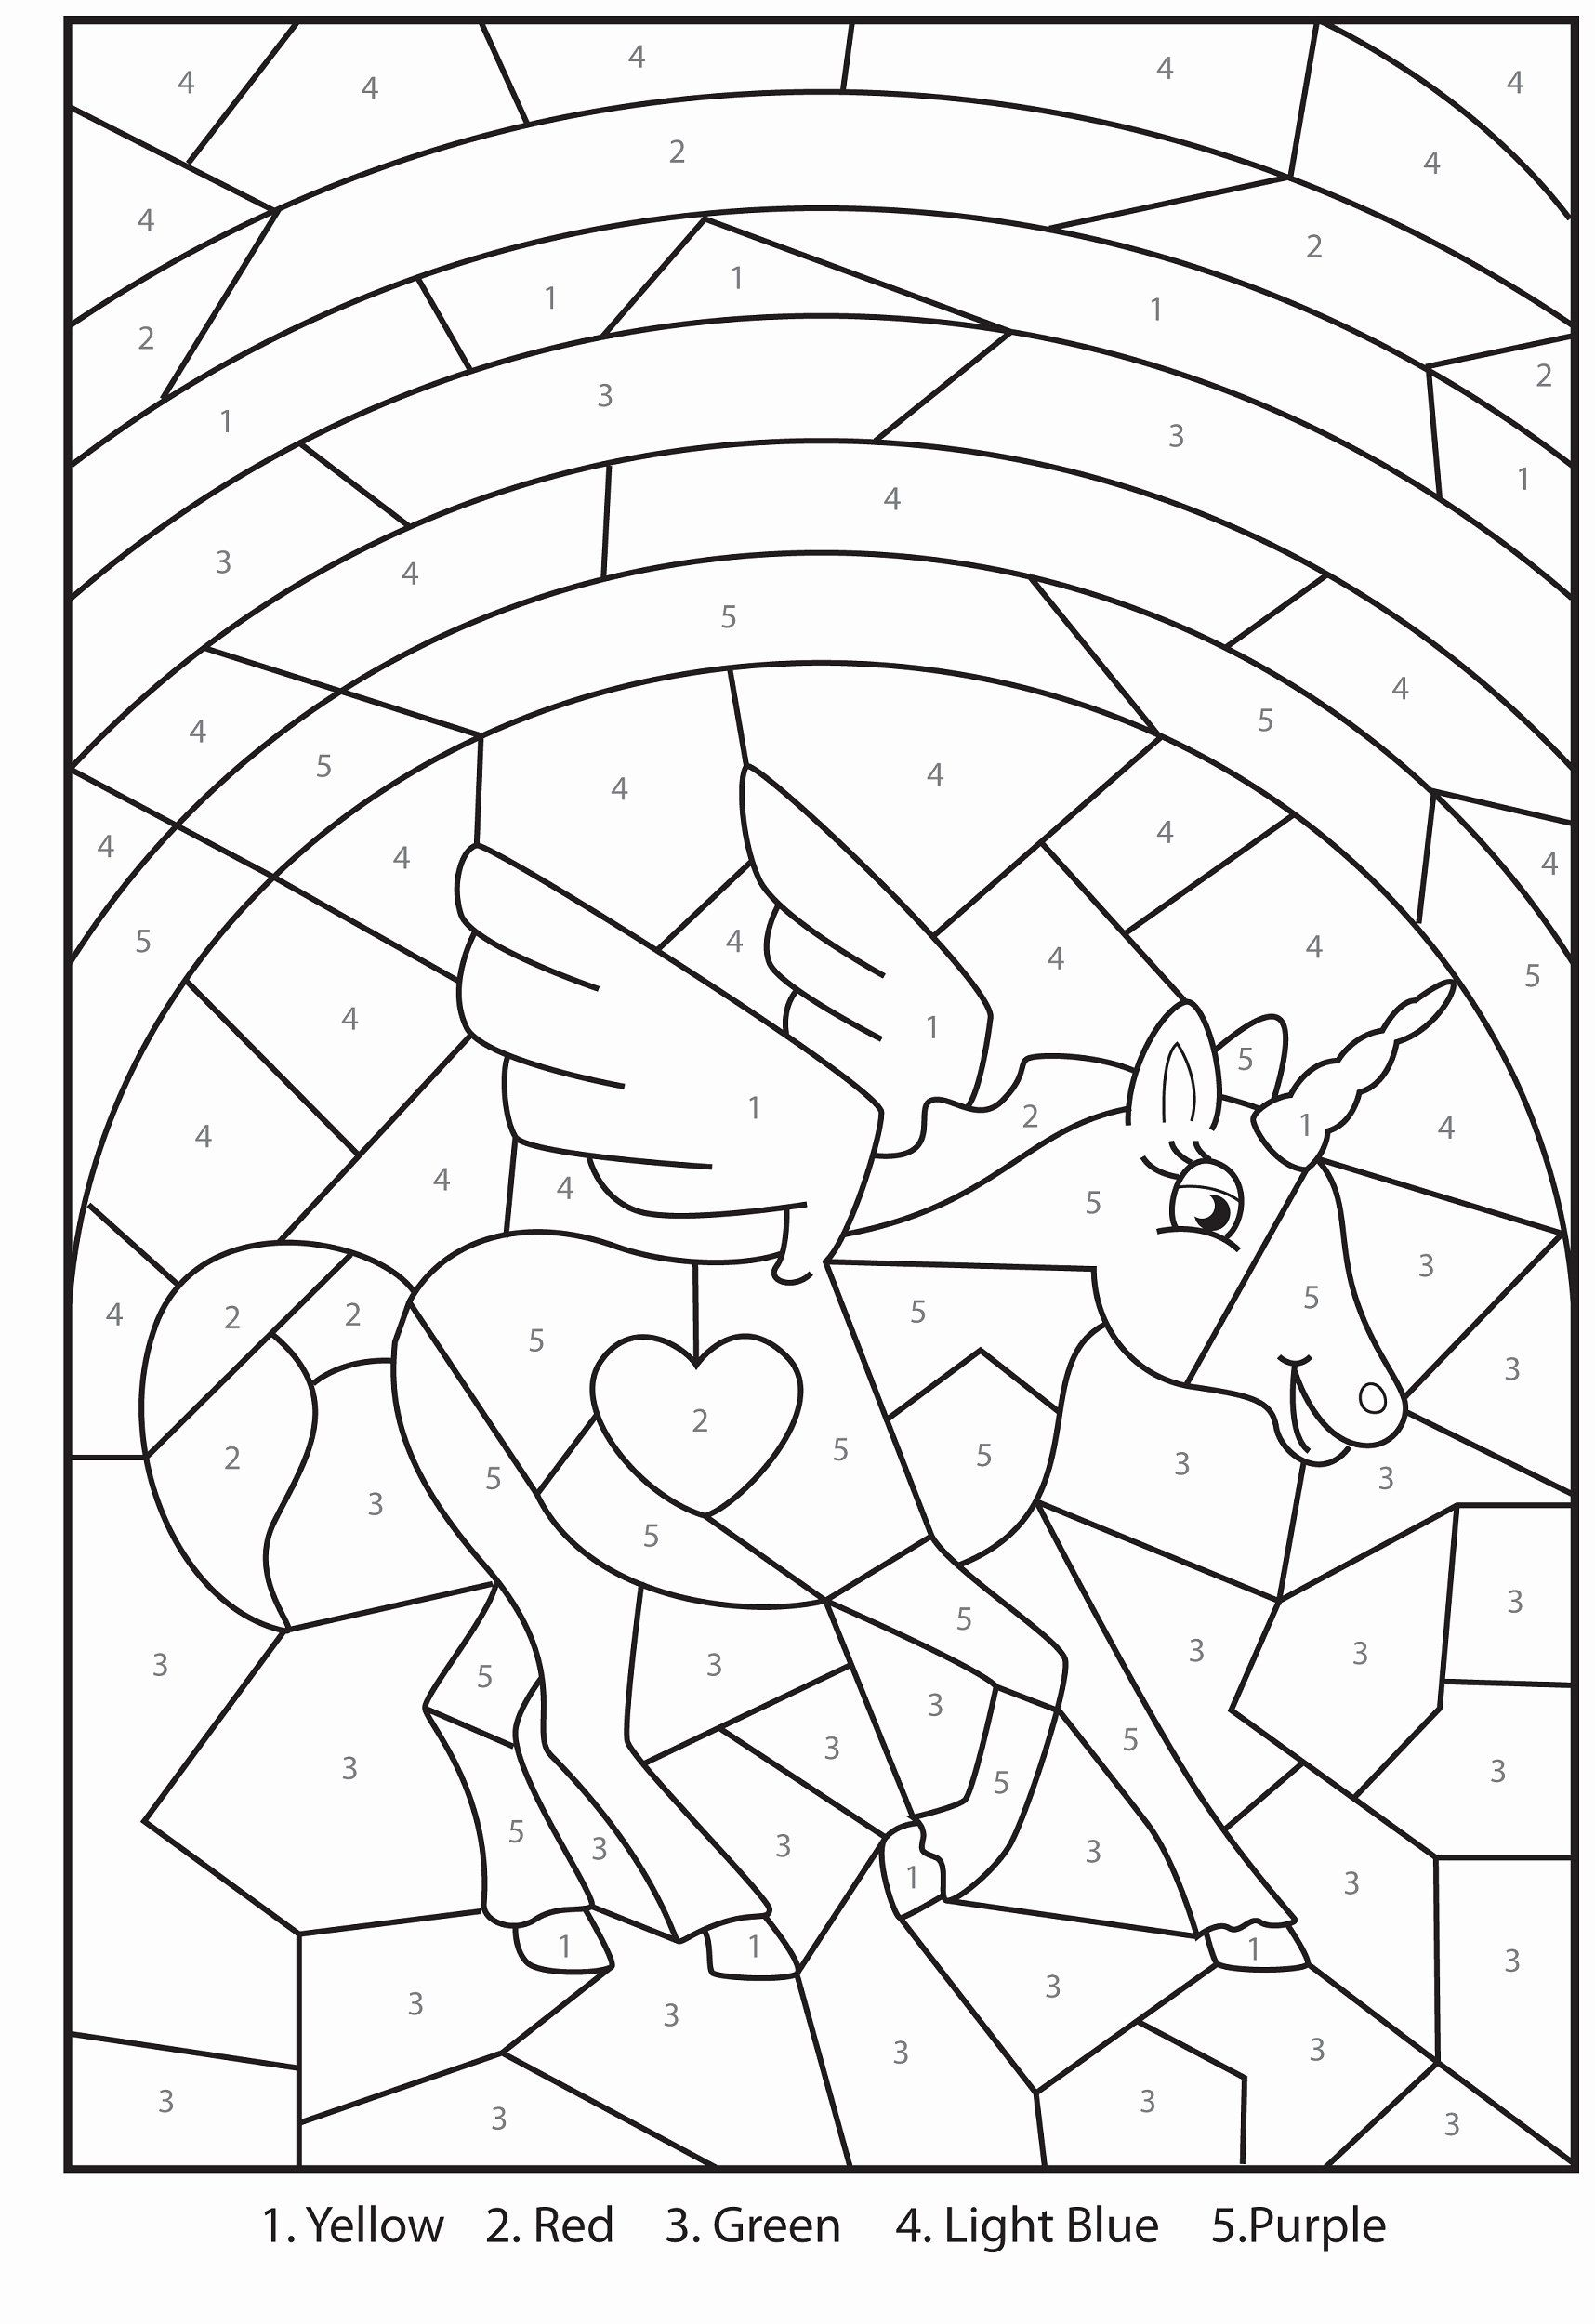 Color By Numbers Coloring Book Fresh Hidden Picture Color By Number Unicorn Coloring Pages Printables Free Kids Coloring Free Kids Coloring Pages